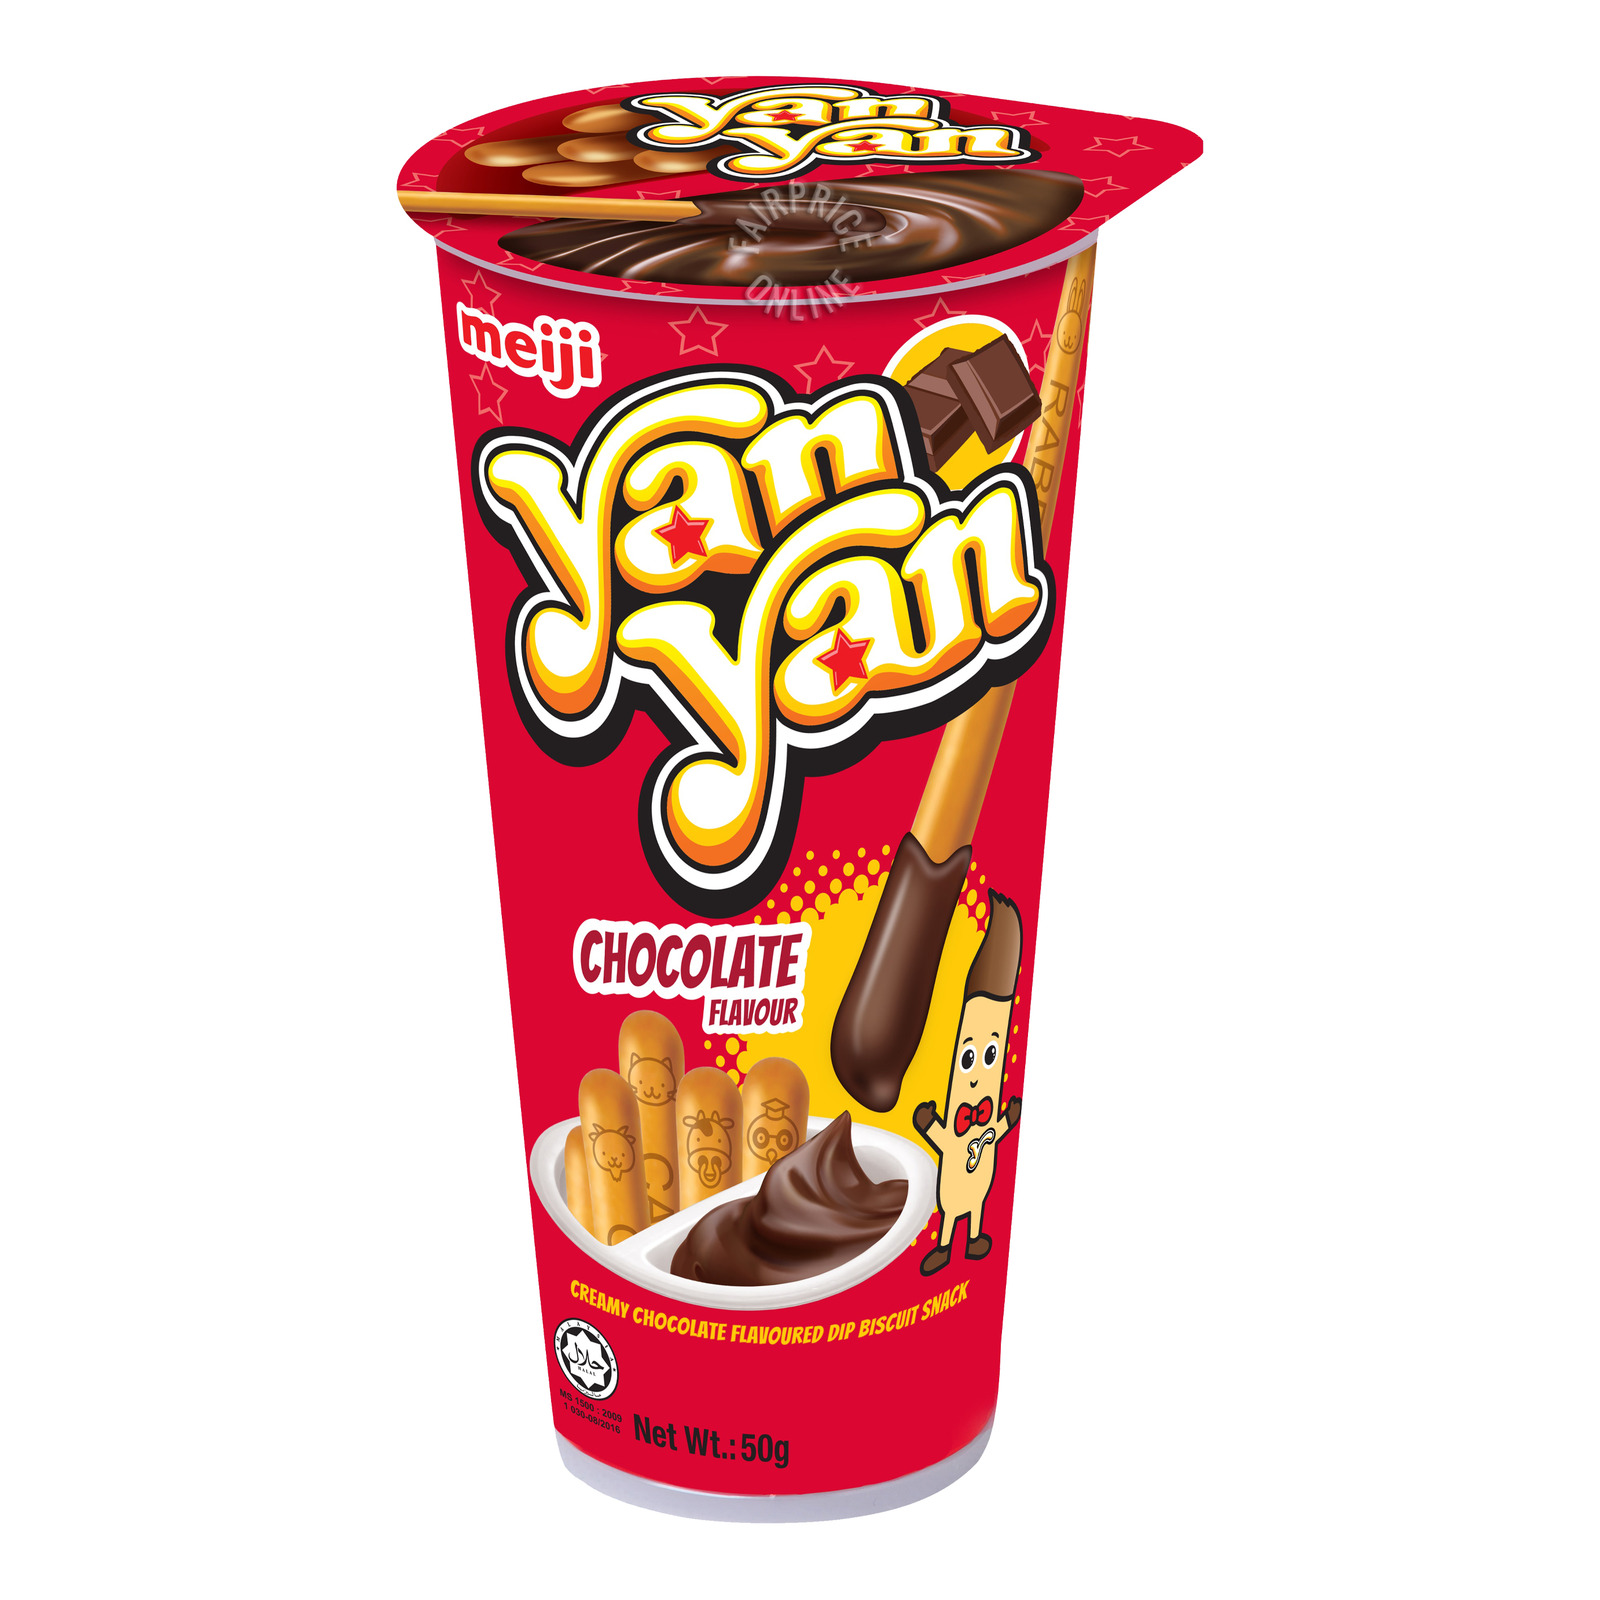 Meiji Yan Yan Stick Biscuits - Chocolate